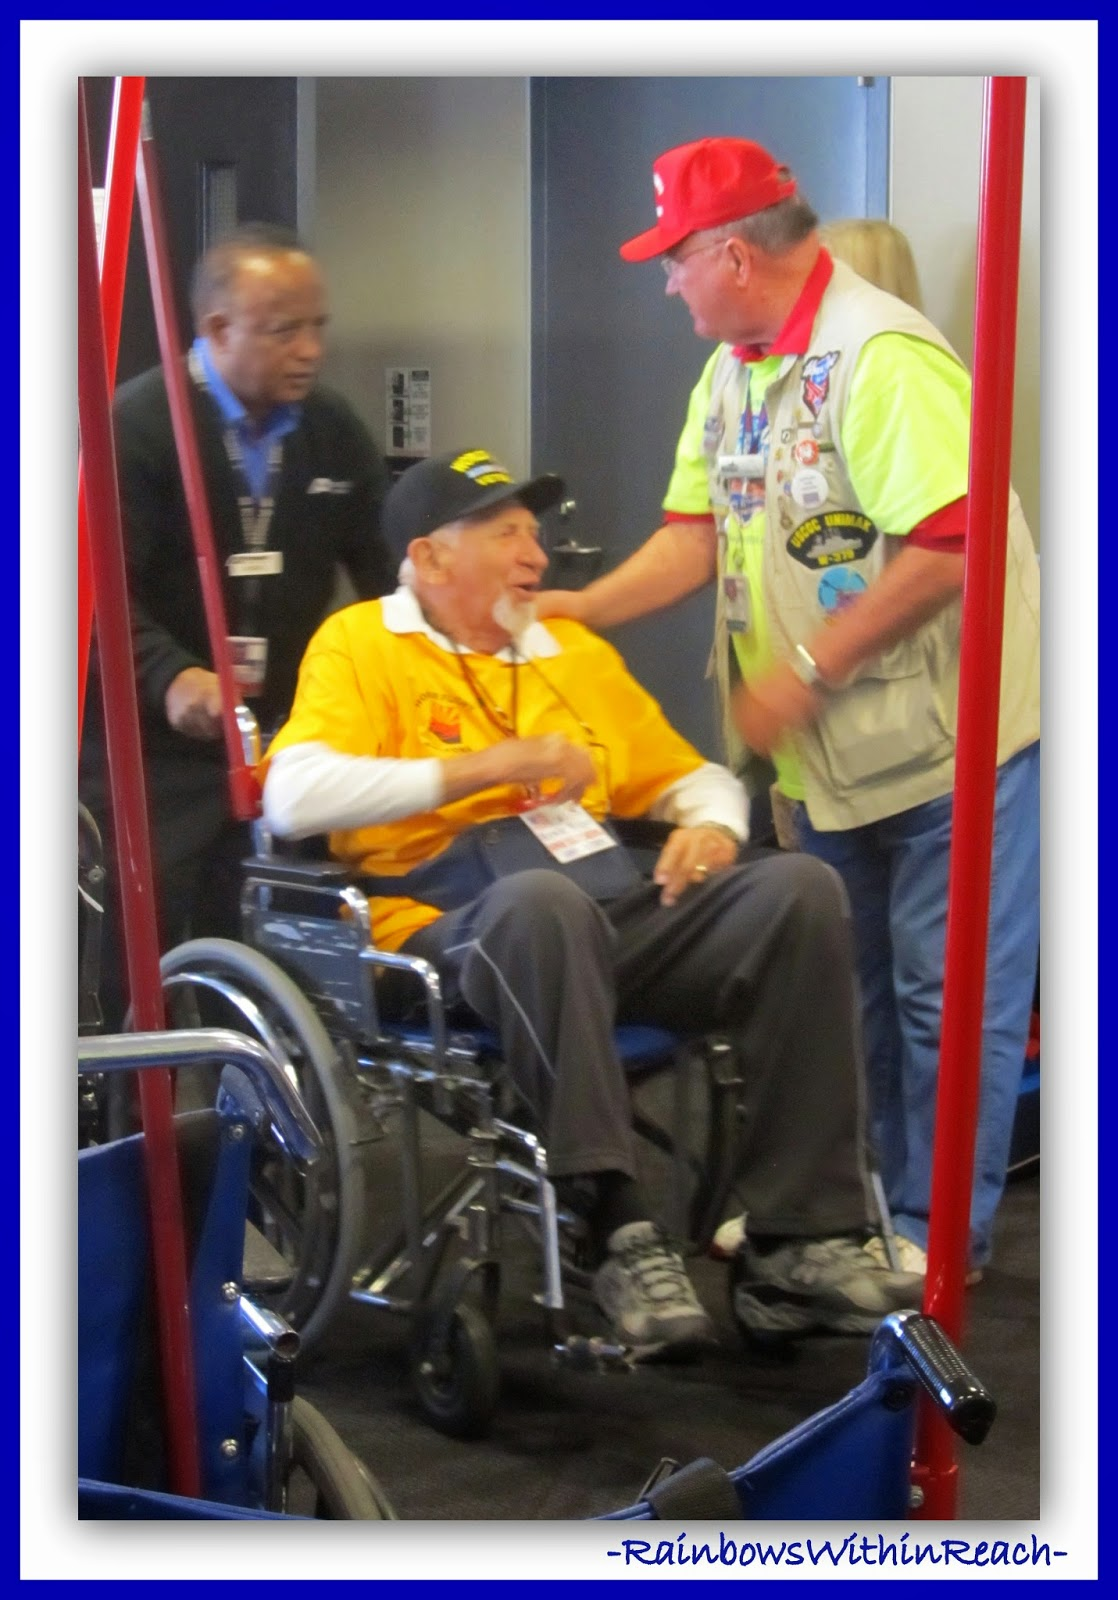 Veteran's Day Honor Flight shared at RainbowsWithinReach